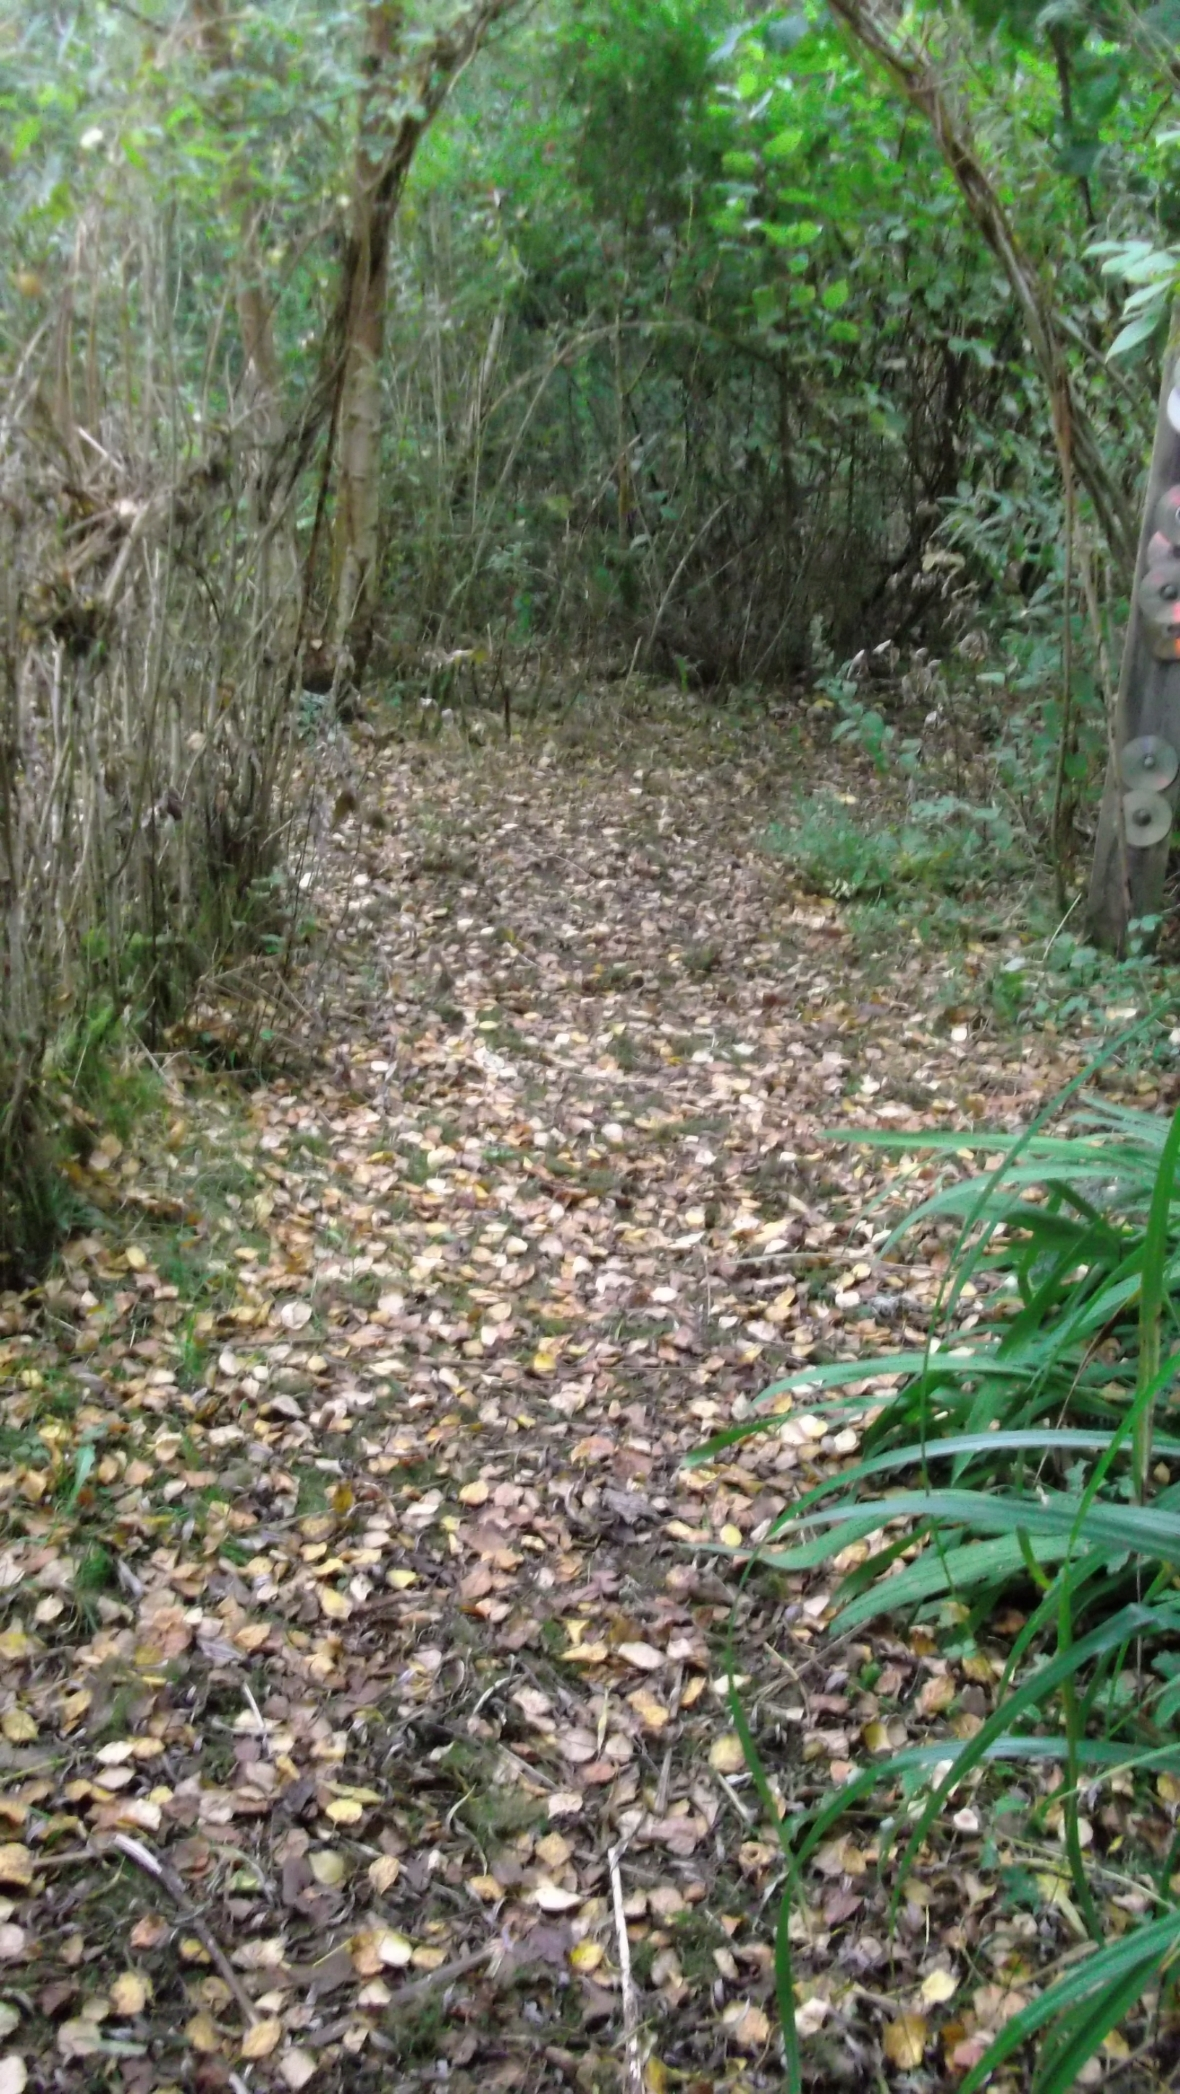 Autumn in permaculture at bealtainecottage.com 021